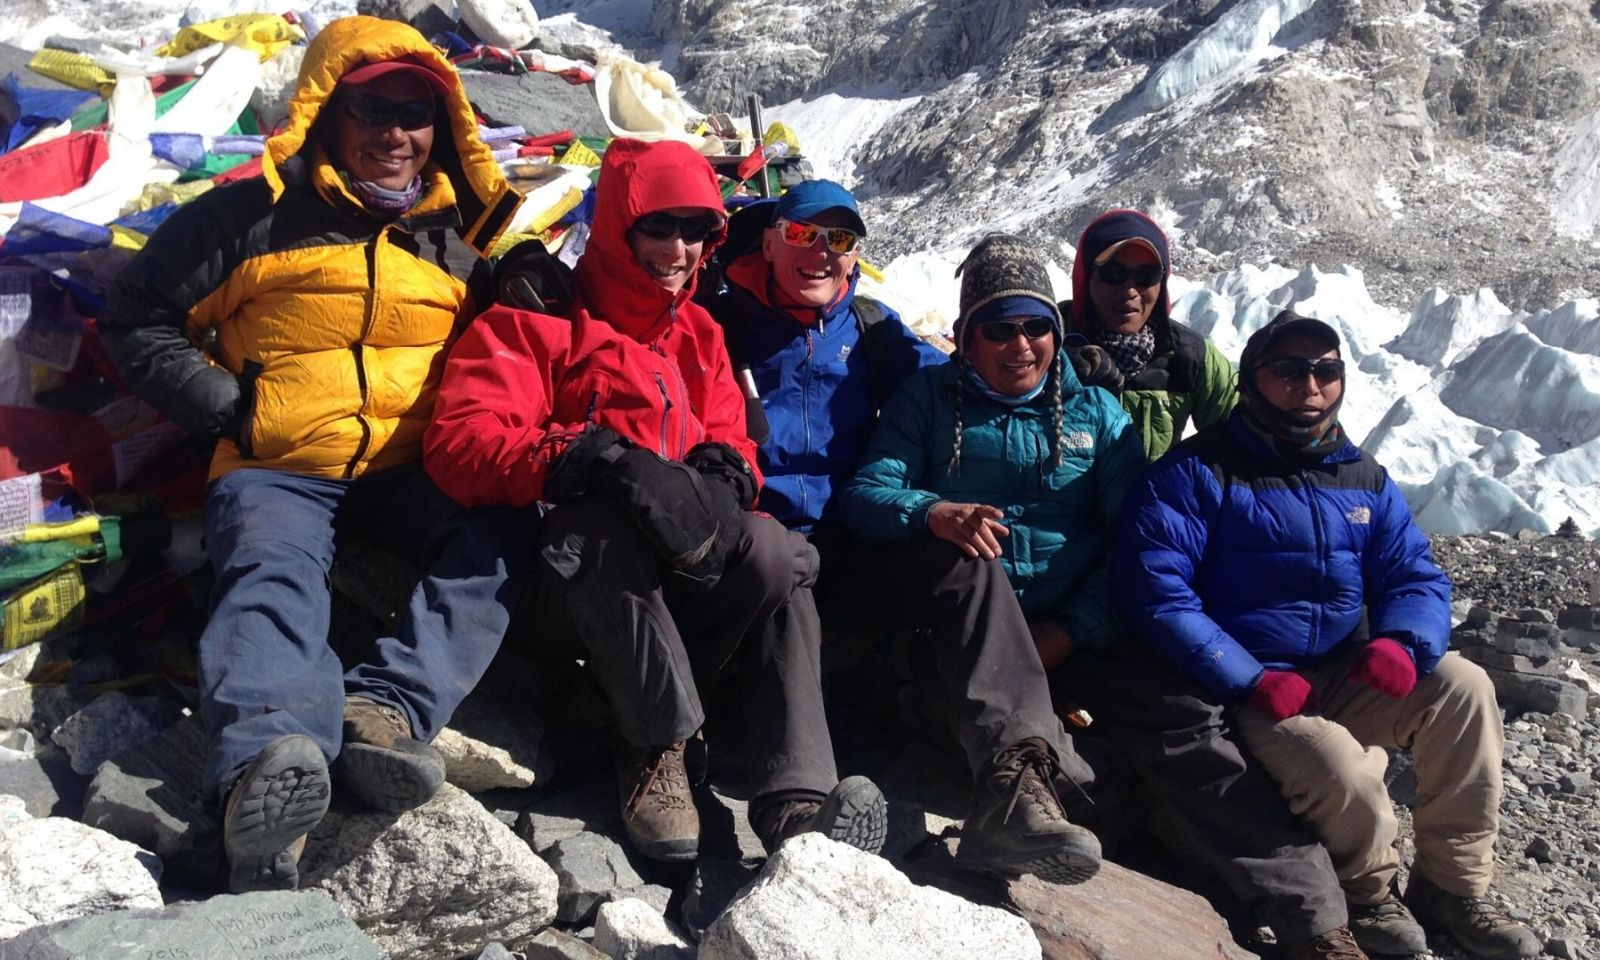 Group standing together at Everest Base Camp, Nepal.